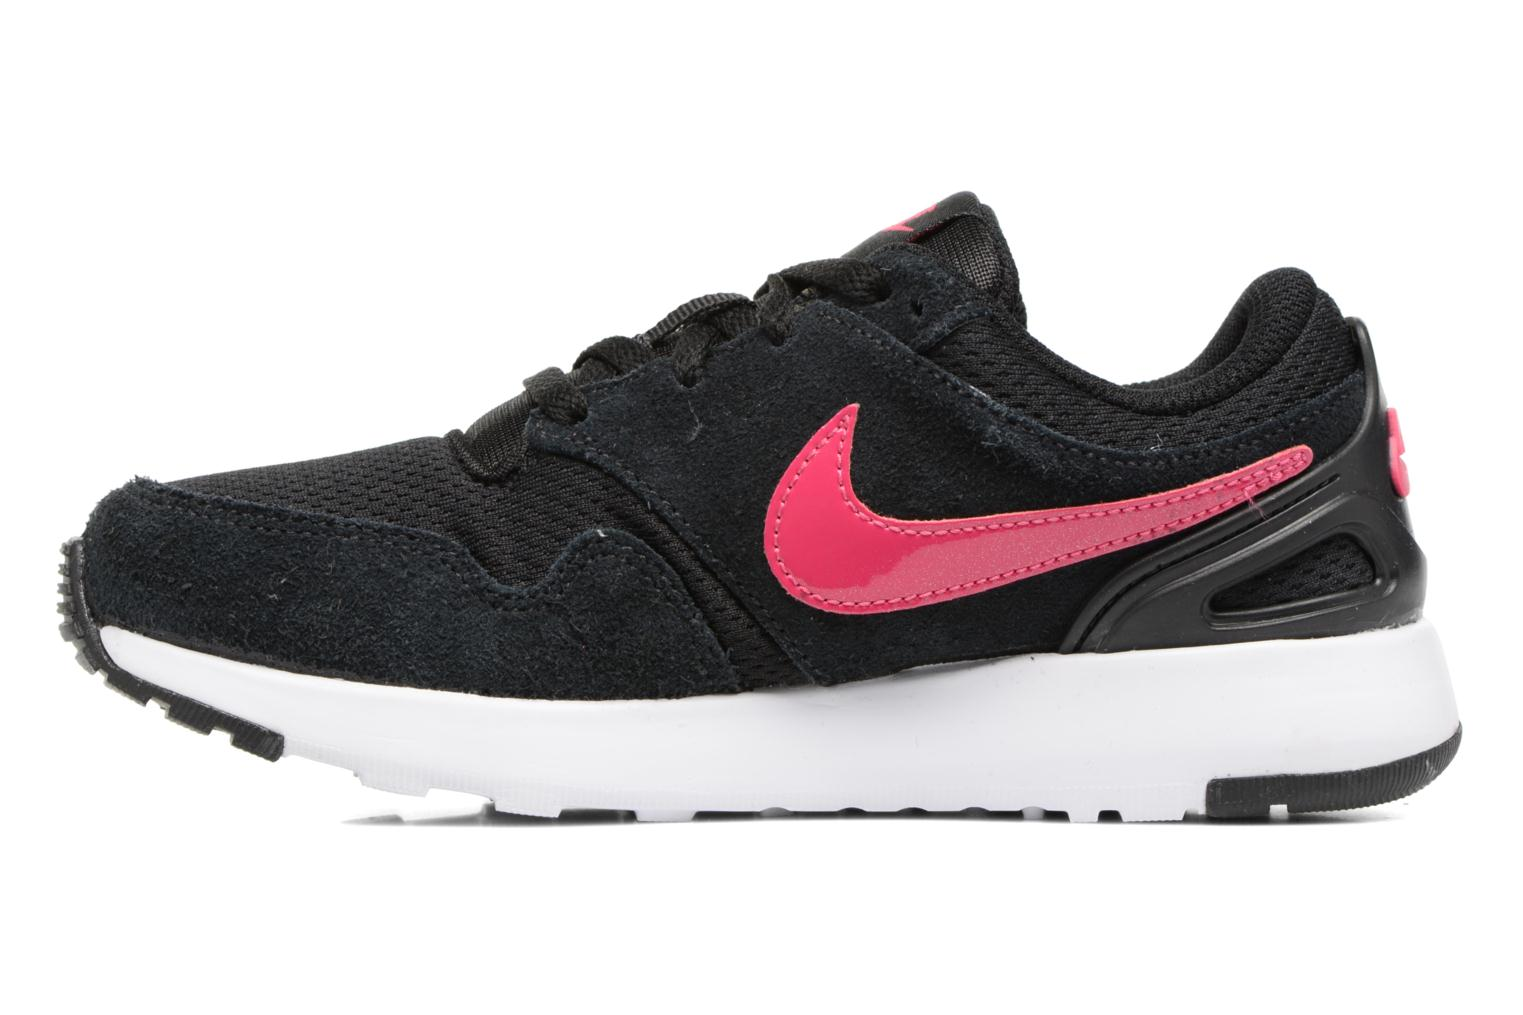 Nike Vibenna (Ps) Black/Rush Pink-White